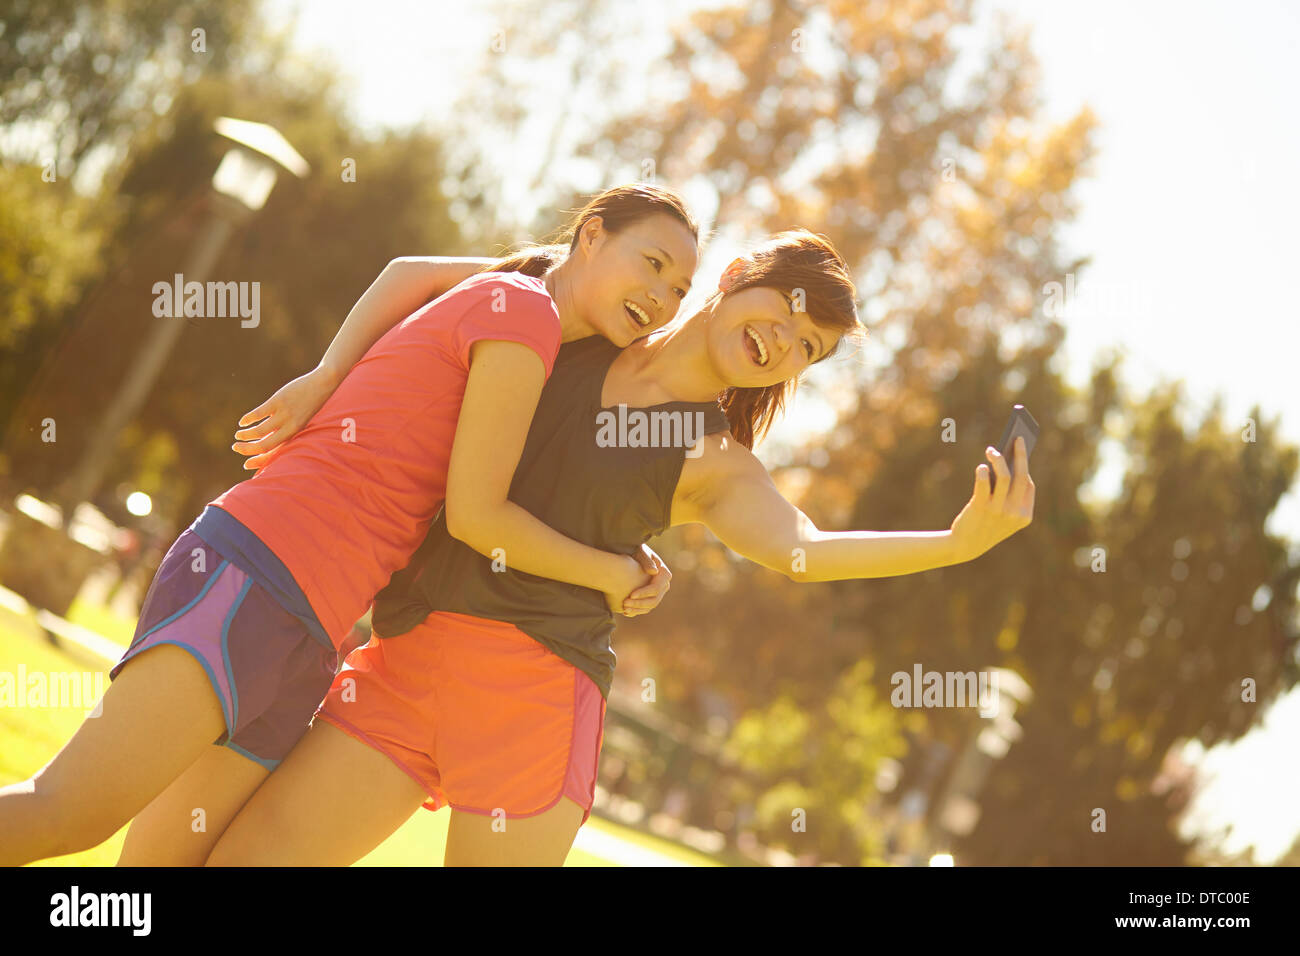 Deux jeunes femmes taking Self Portrait in park Photo Stock